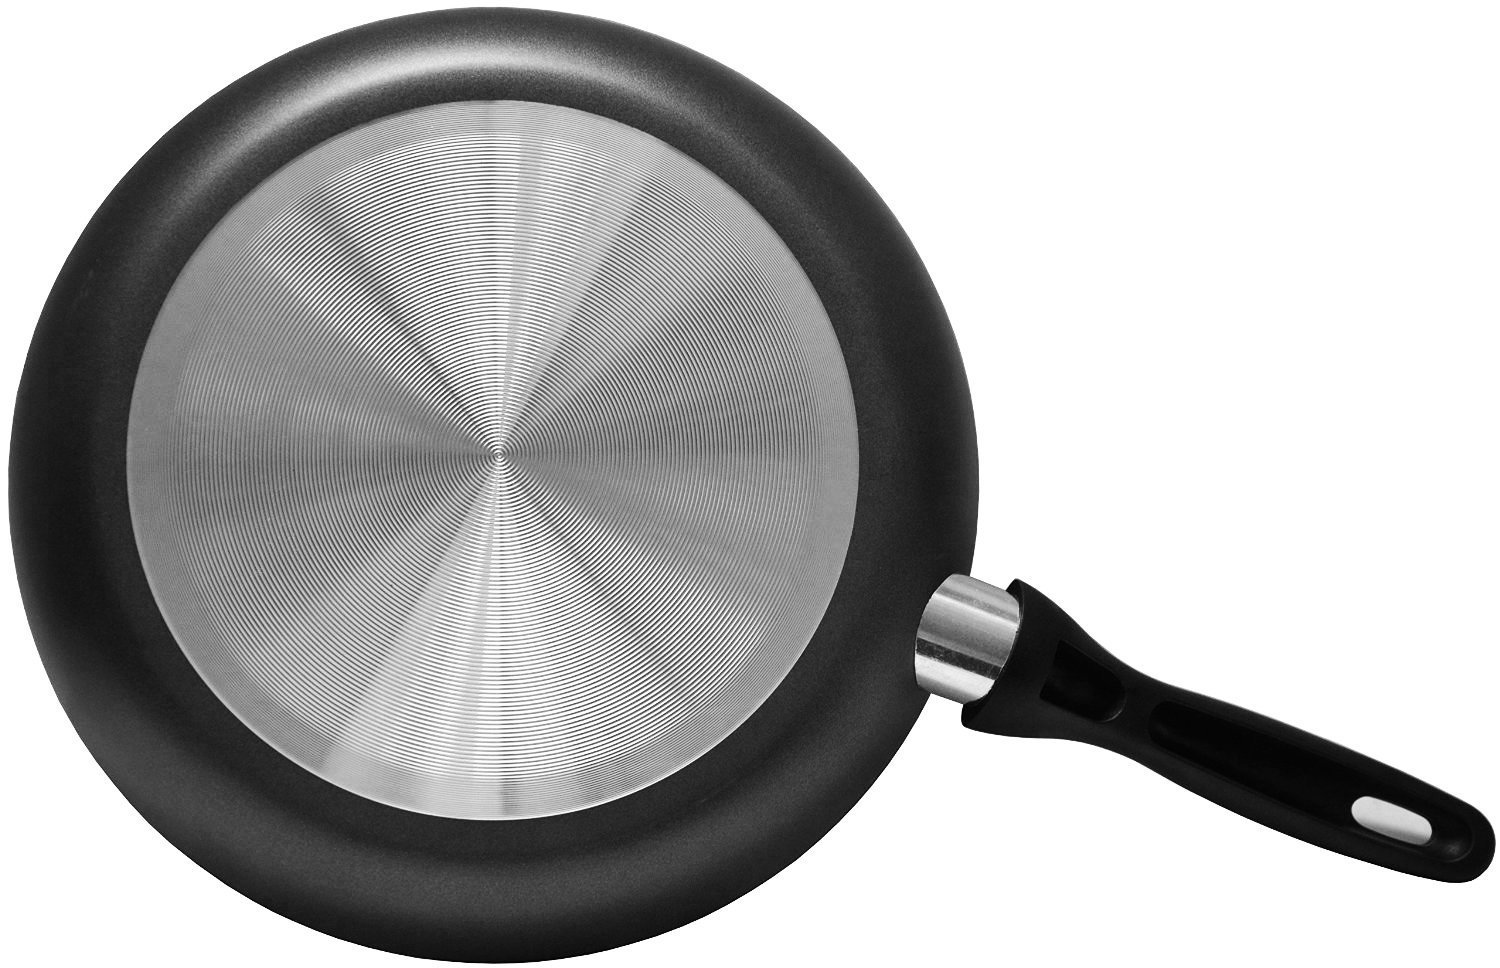 3-Piece 8 Inches, 9.5 Inches, 11 Inches Aluminum Nonstick Frying Pan Set - - Fry Pan//Frying pan Cookware Set by Utopia Kitchen UK0071 Dishwasher Safe